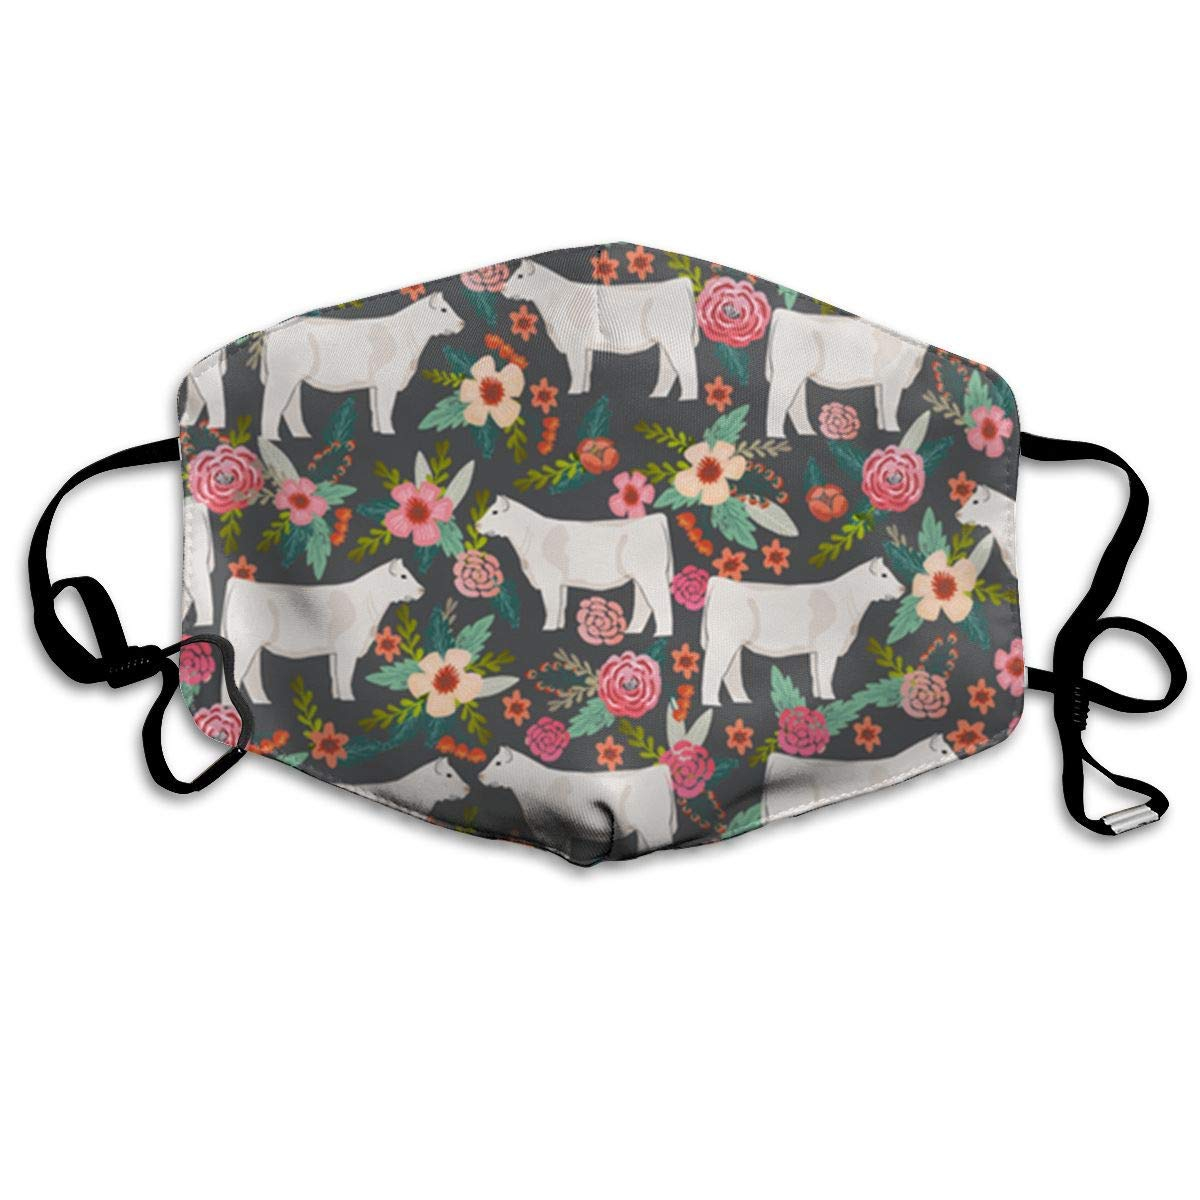 Daawqee Mascarillas, Charolais Cattle Fabric Cows Florals Far Breathe Healthy Face Mask for Dust, Allergy & Flu; Adjustable Ear Loops, Washable Antimicrobial